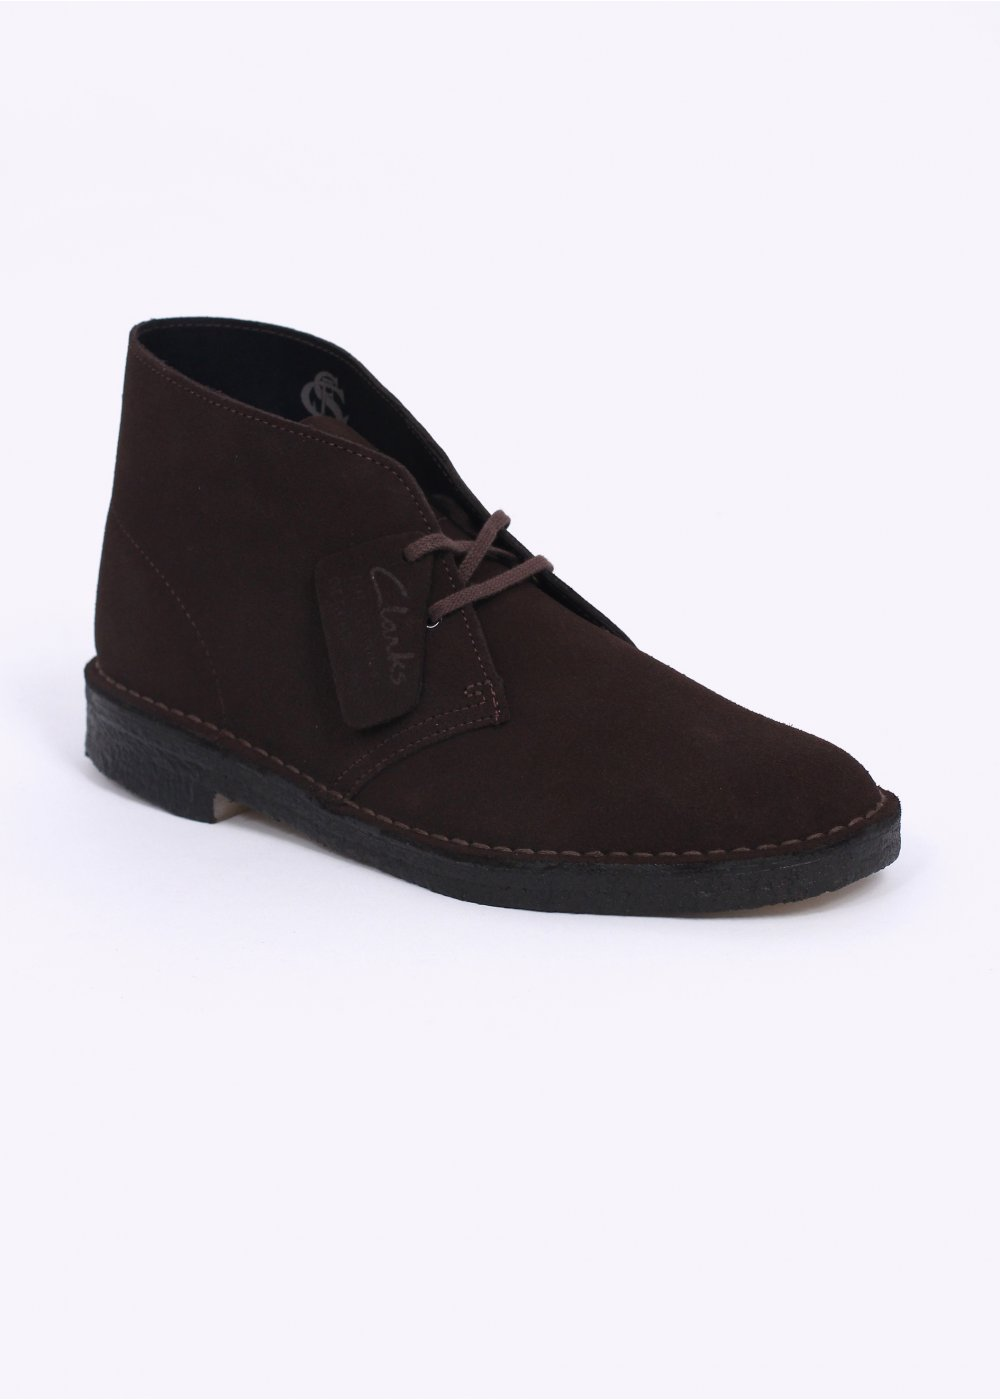 clarks originals desert boot suede brown